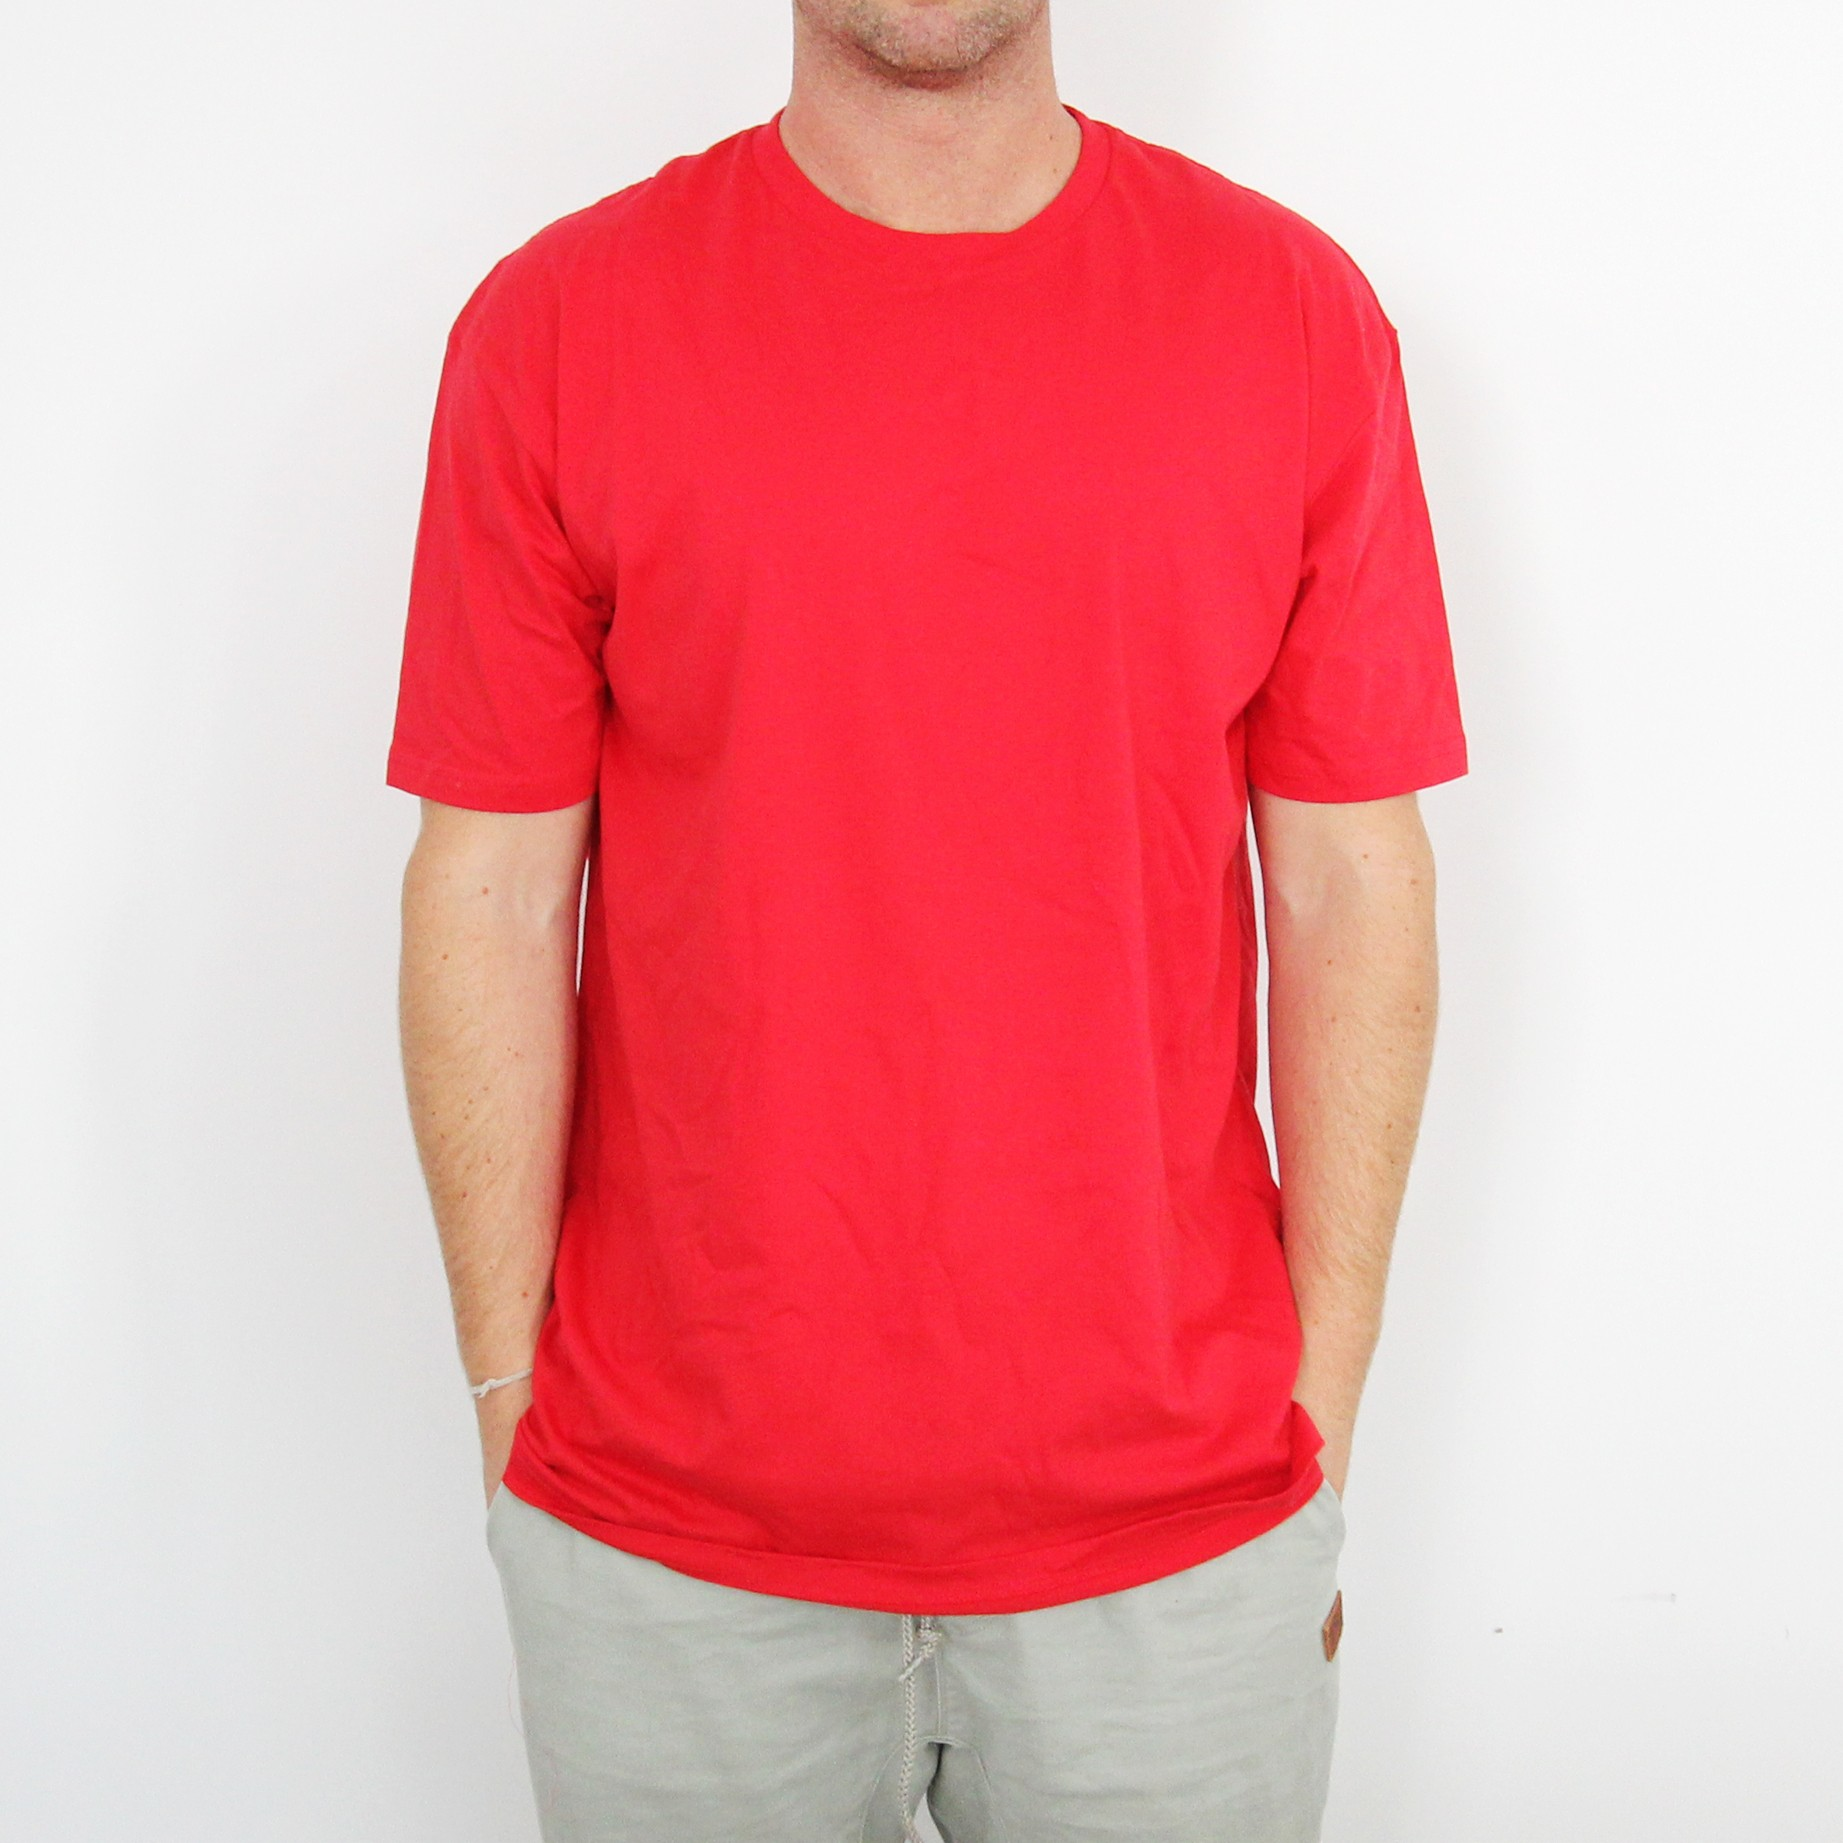 pin homeblanktshirtsredshirt on pinterest